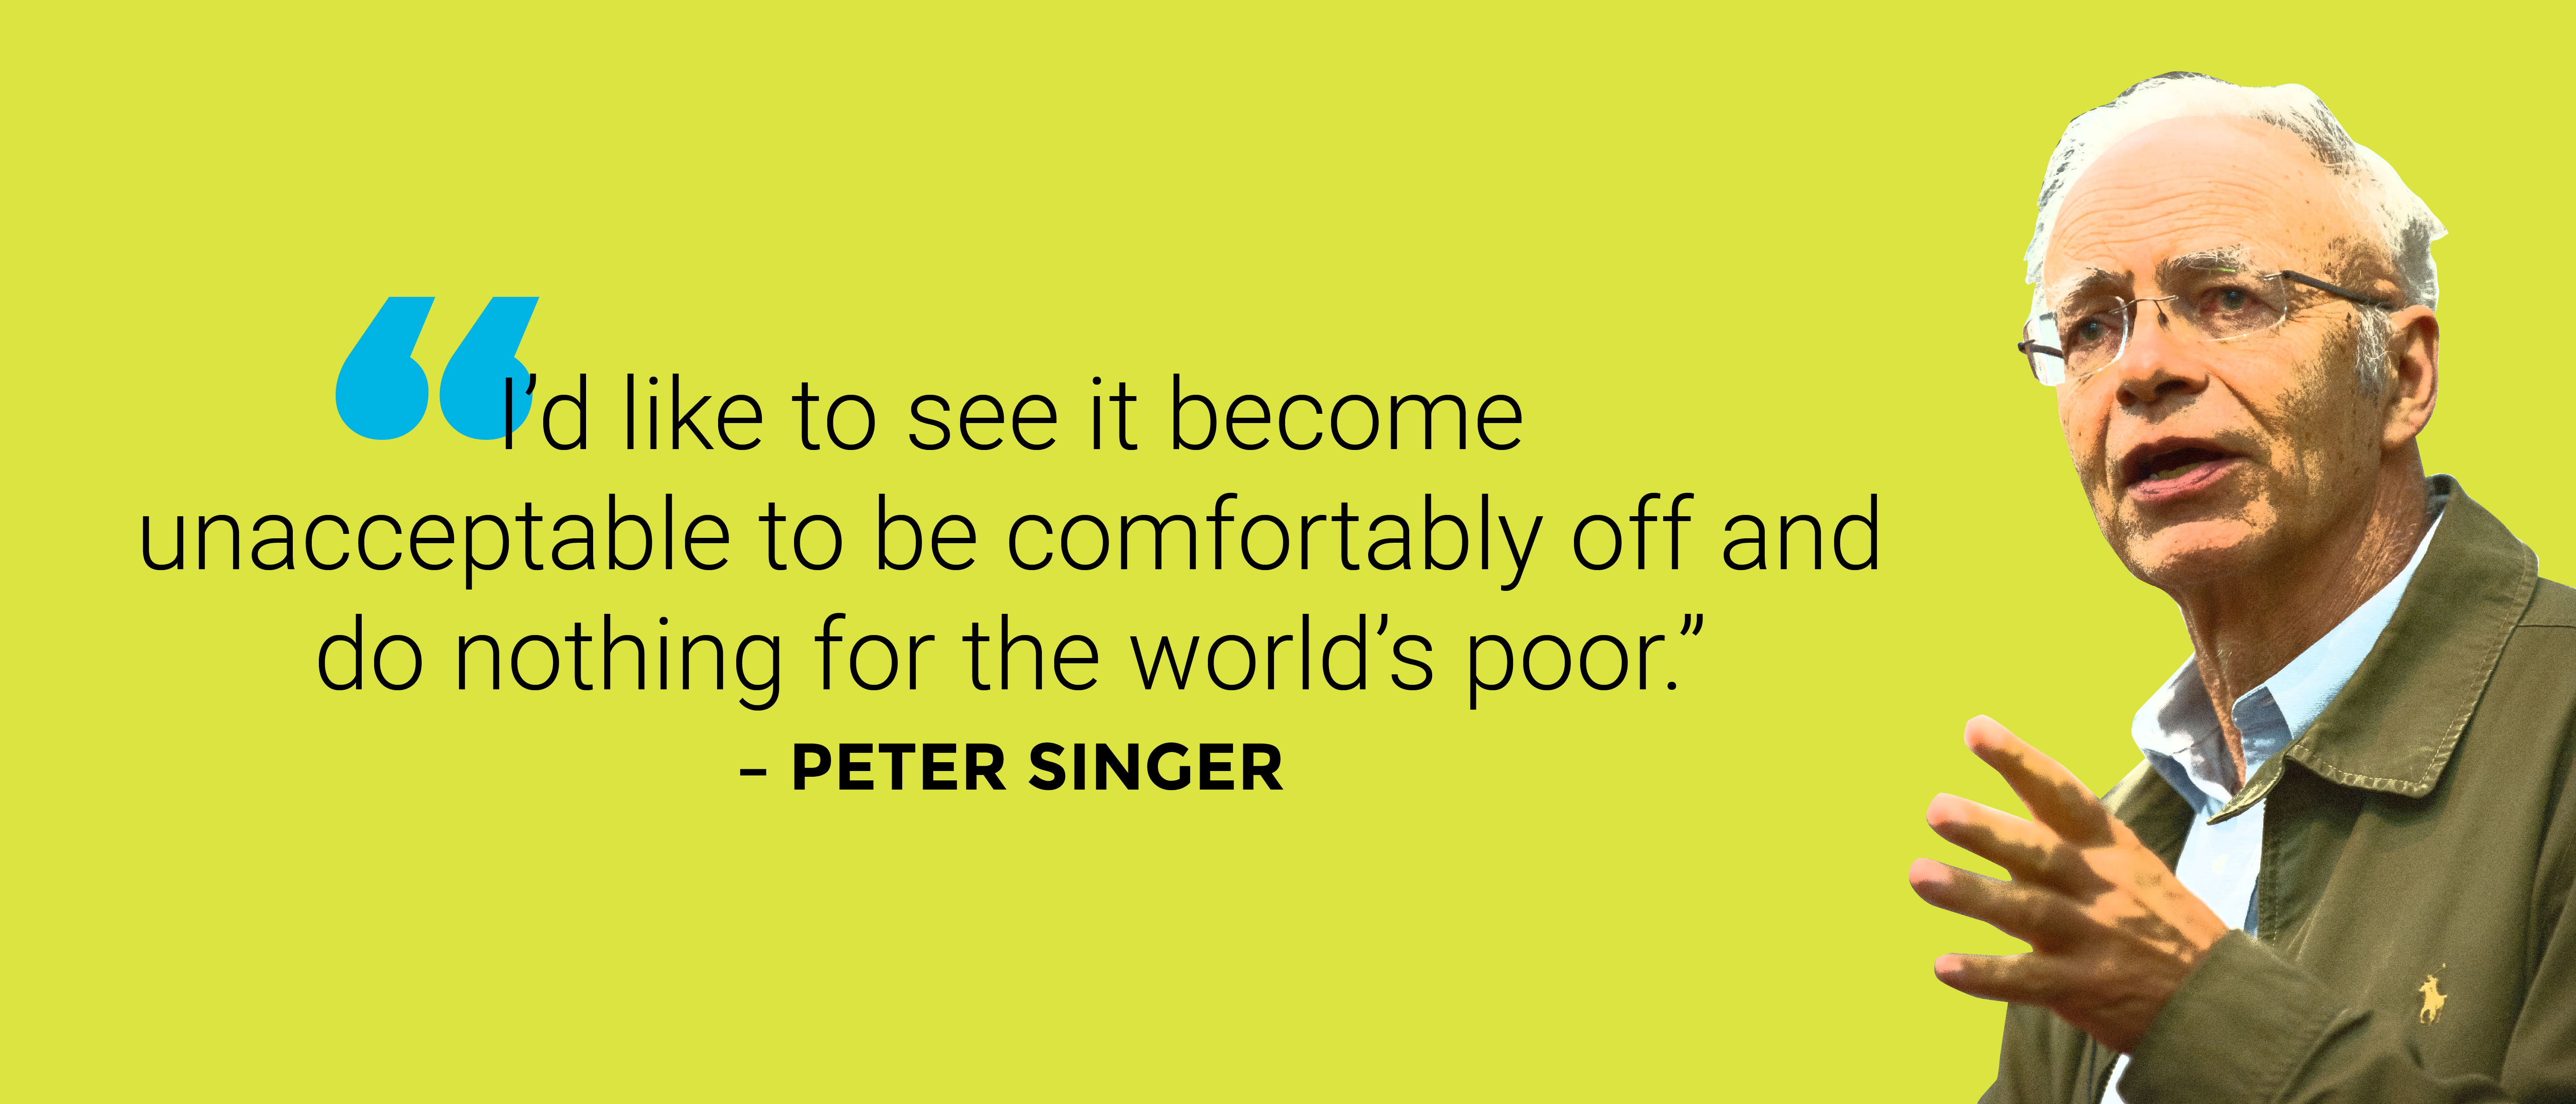 """I'd like to see it become unacceptable to be comfortably off and do nothing for the world's poor."" -Peter Singer [5833 x 2500]"